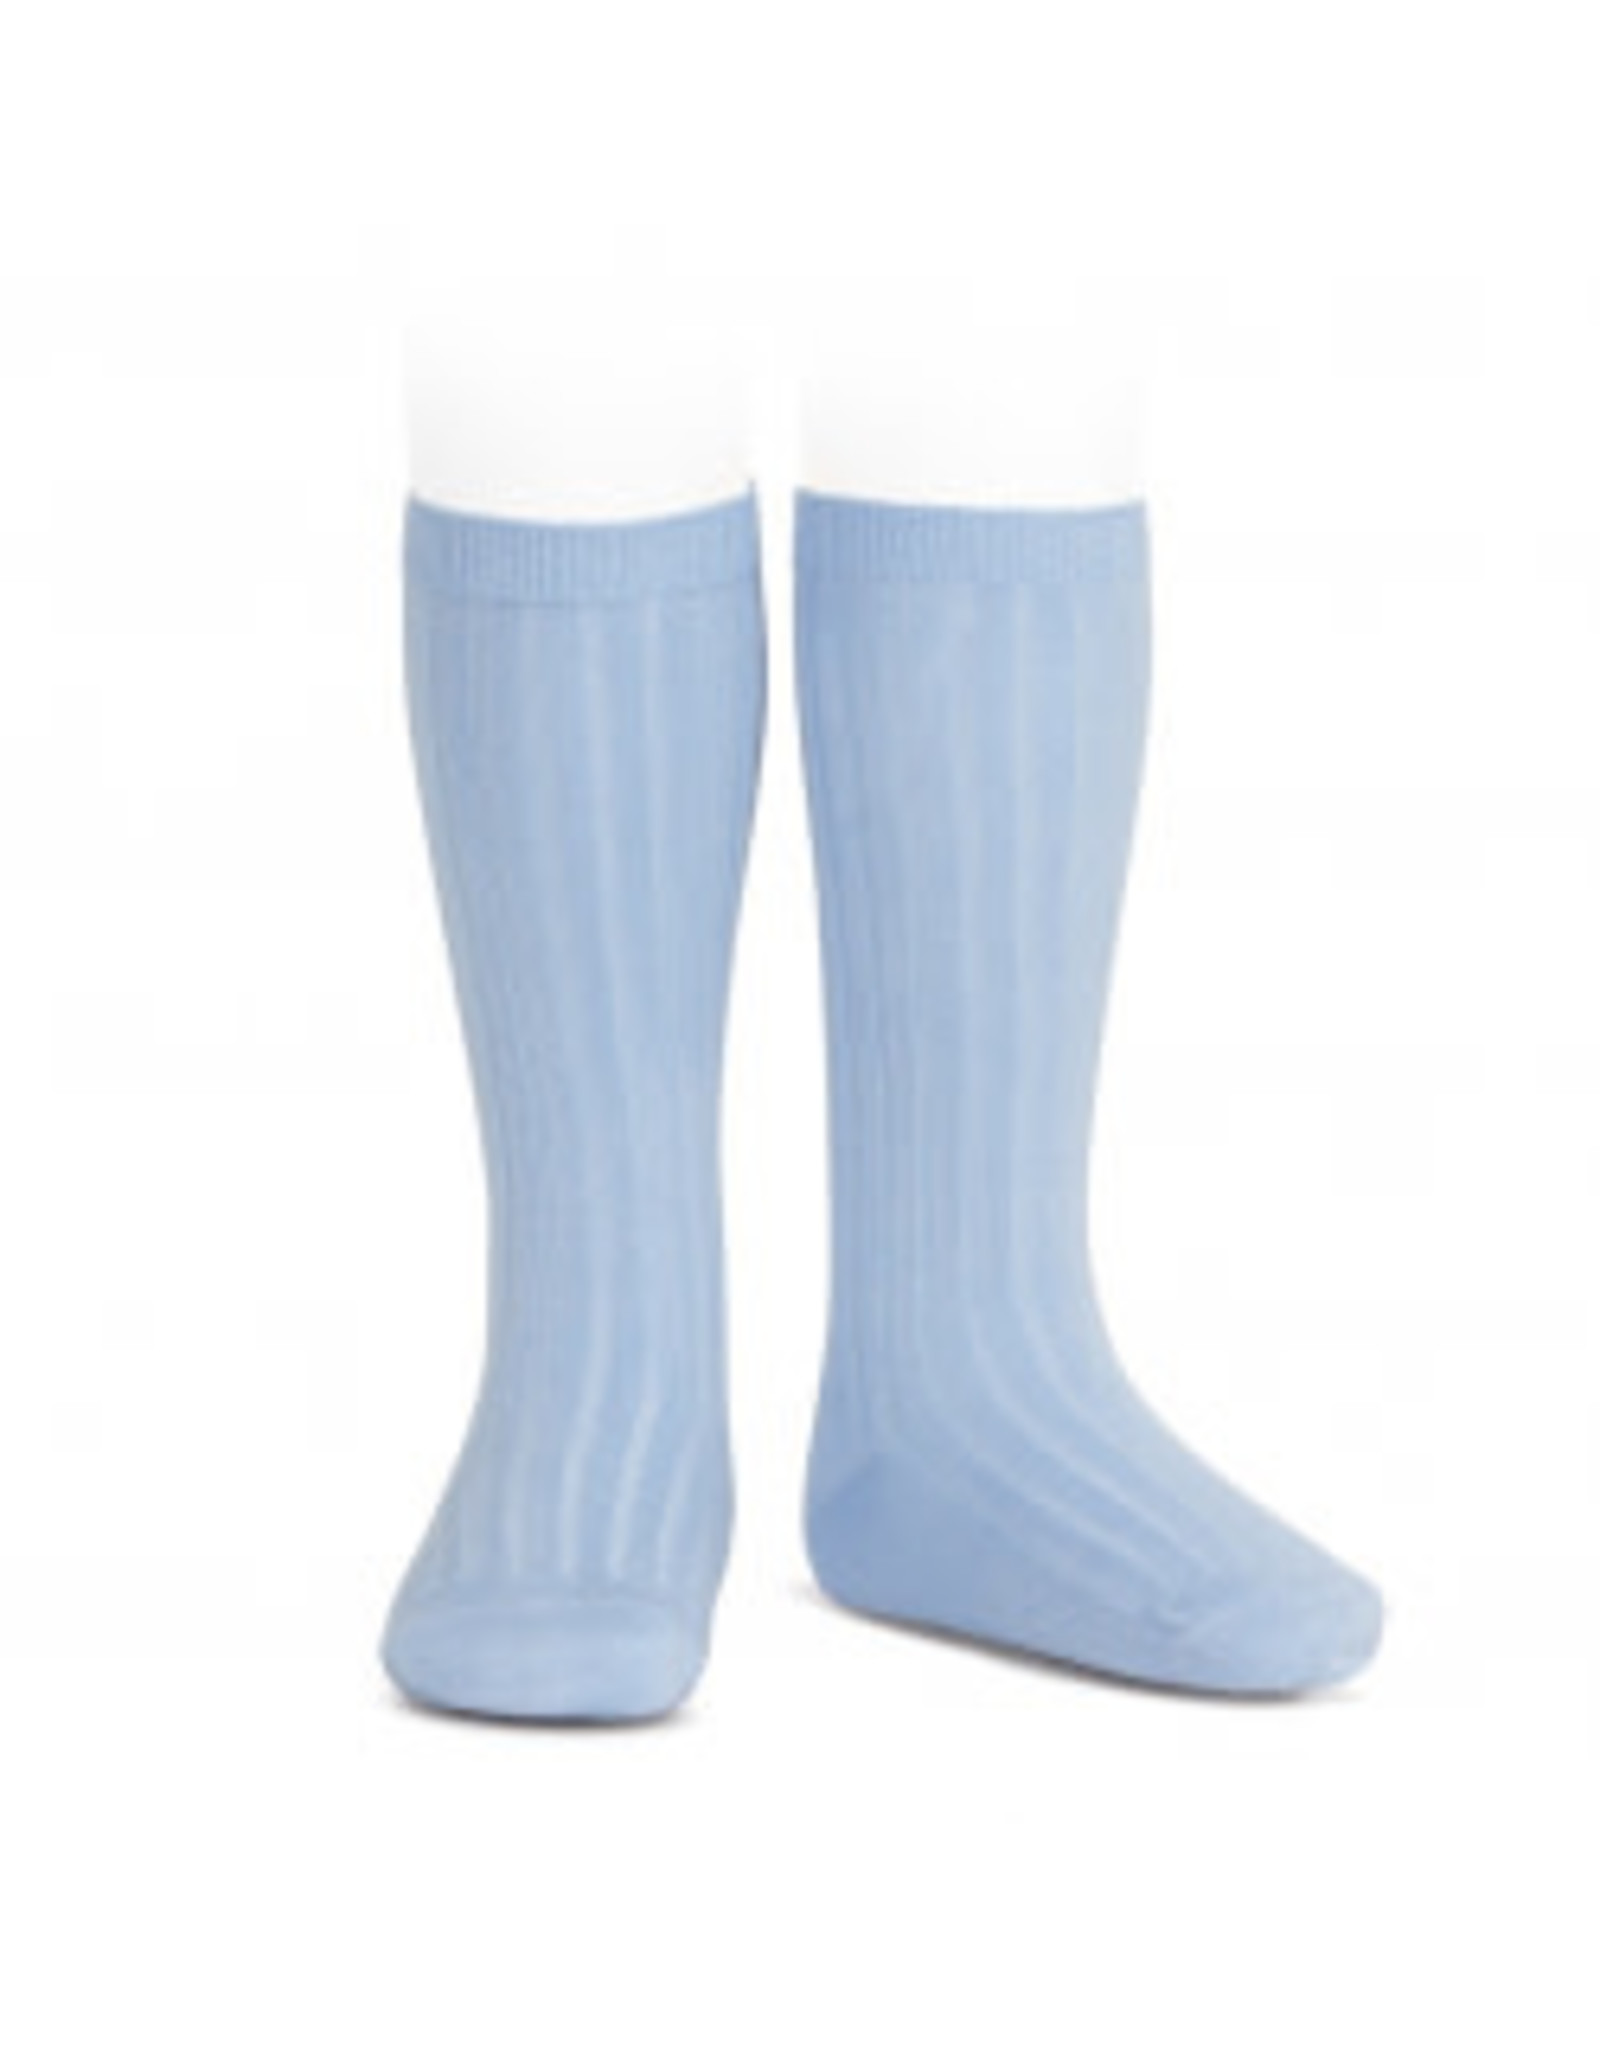 Cóndor Kniekous light blue 429